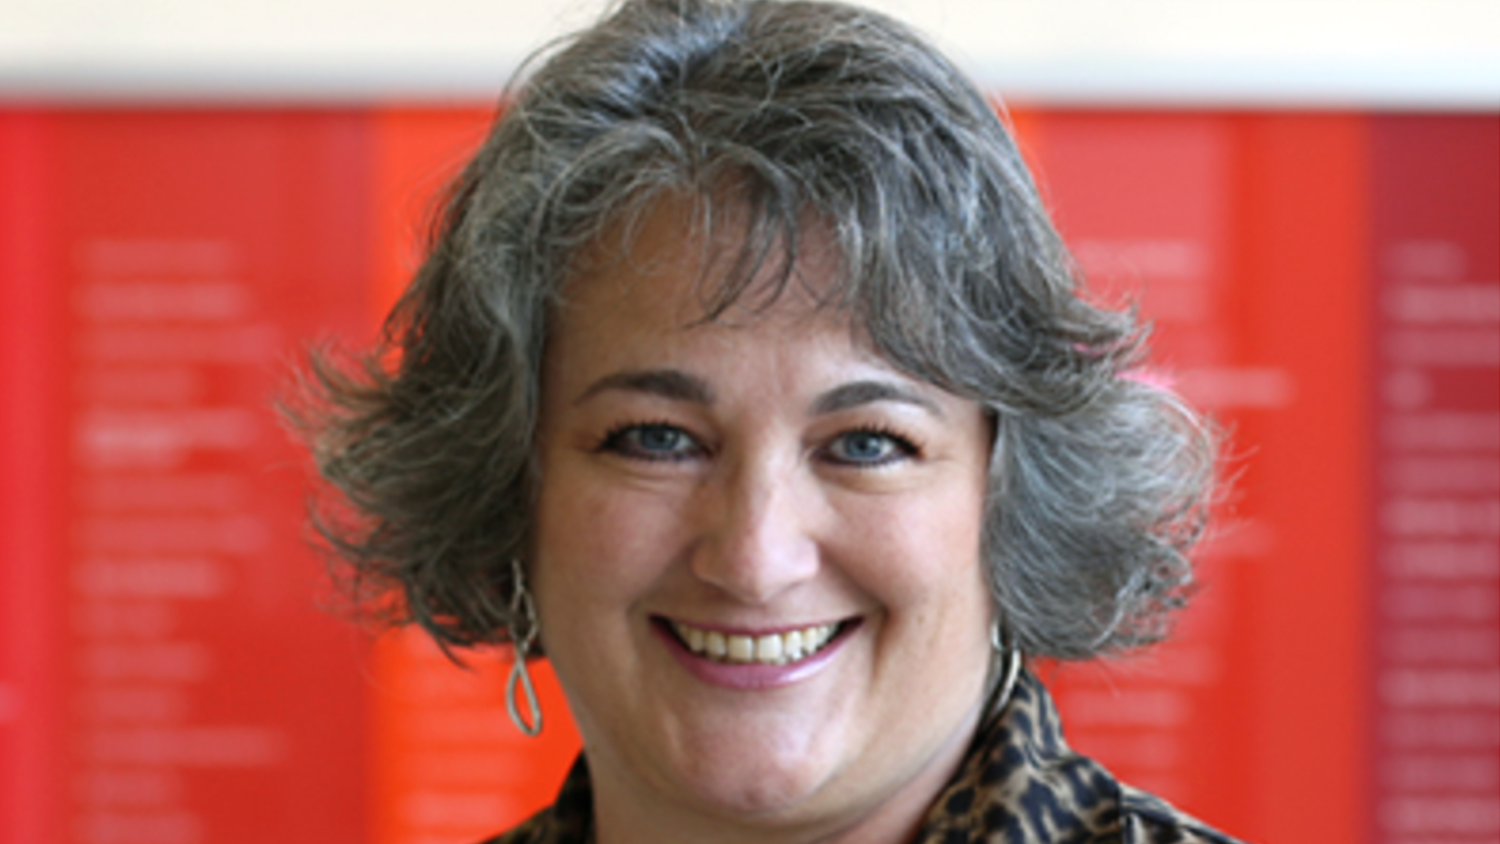 NC State College of Education Professor Hollylynne Lee